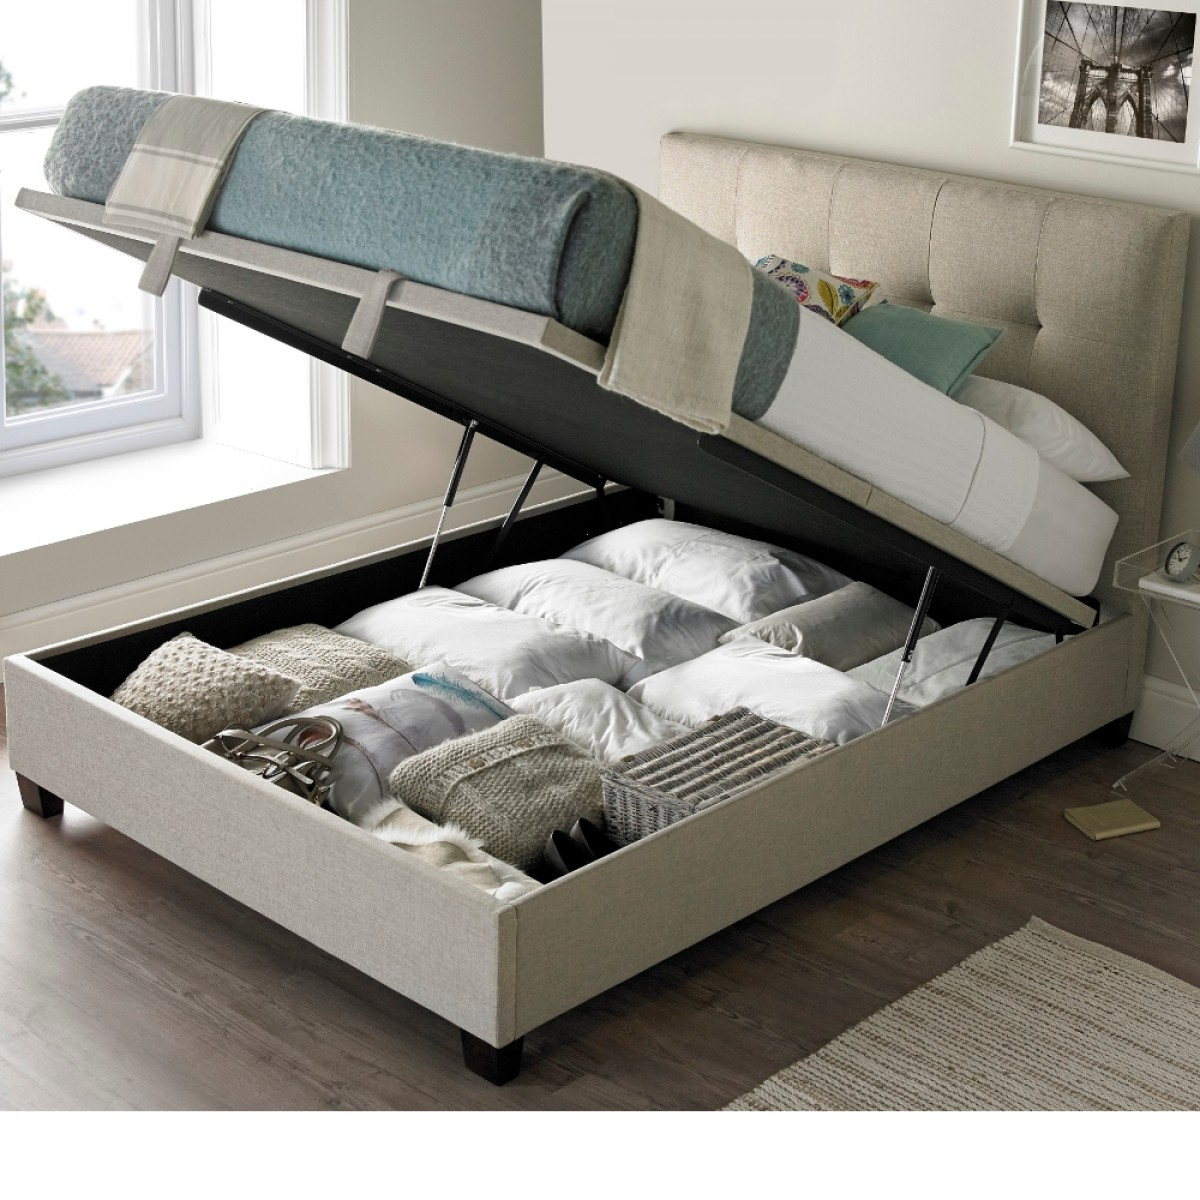 Walkworth Oatmeal Fabric Ottoman Storage Bed